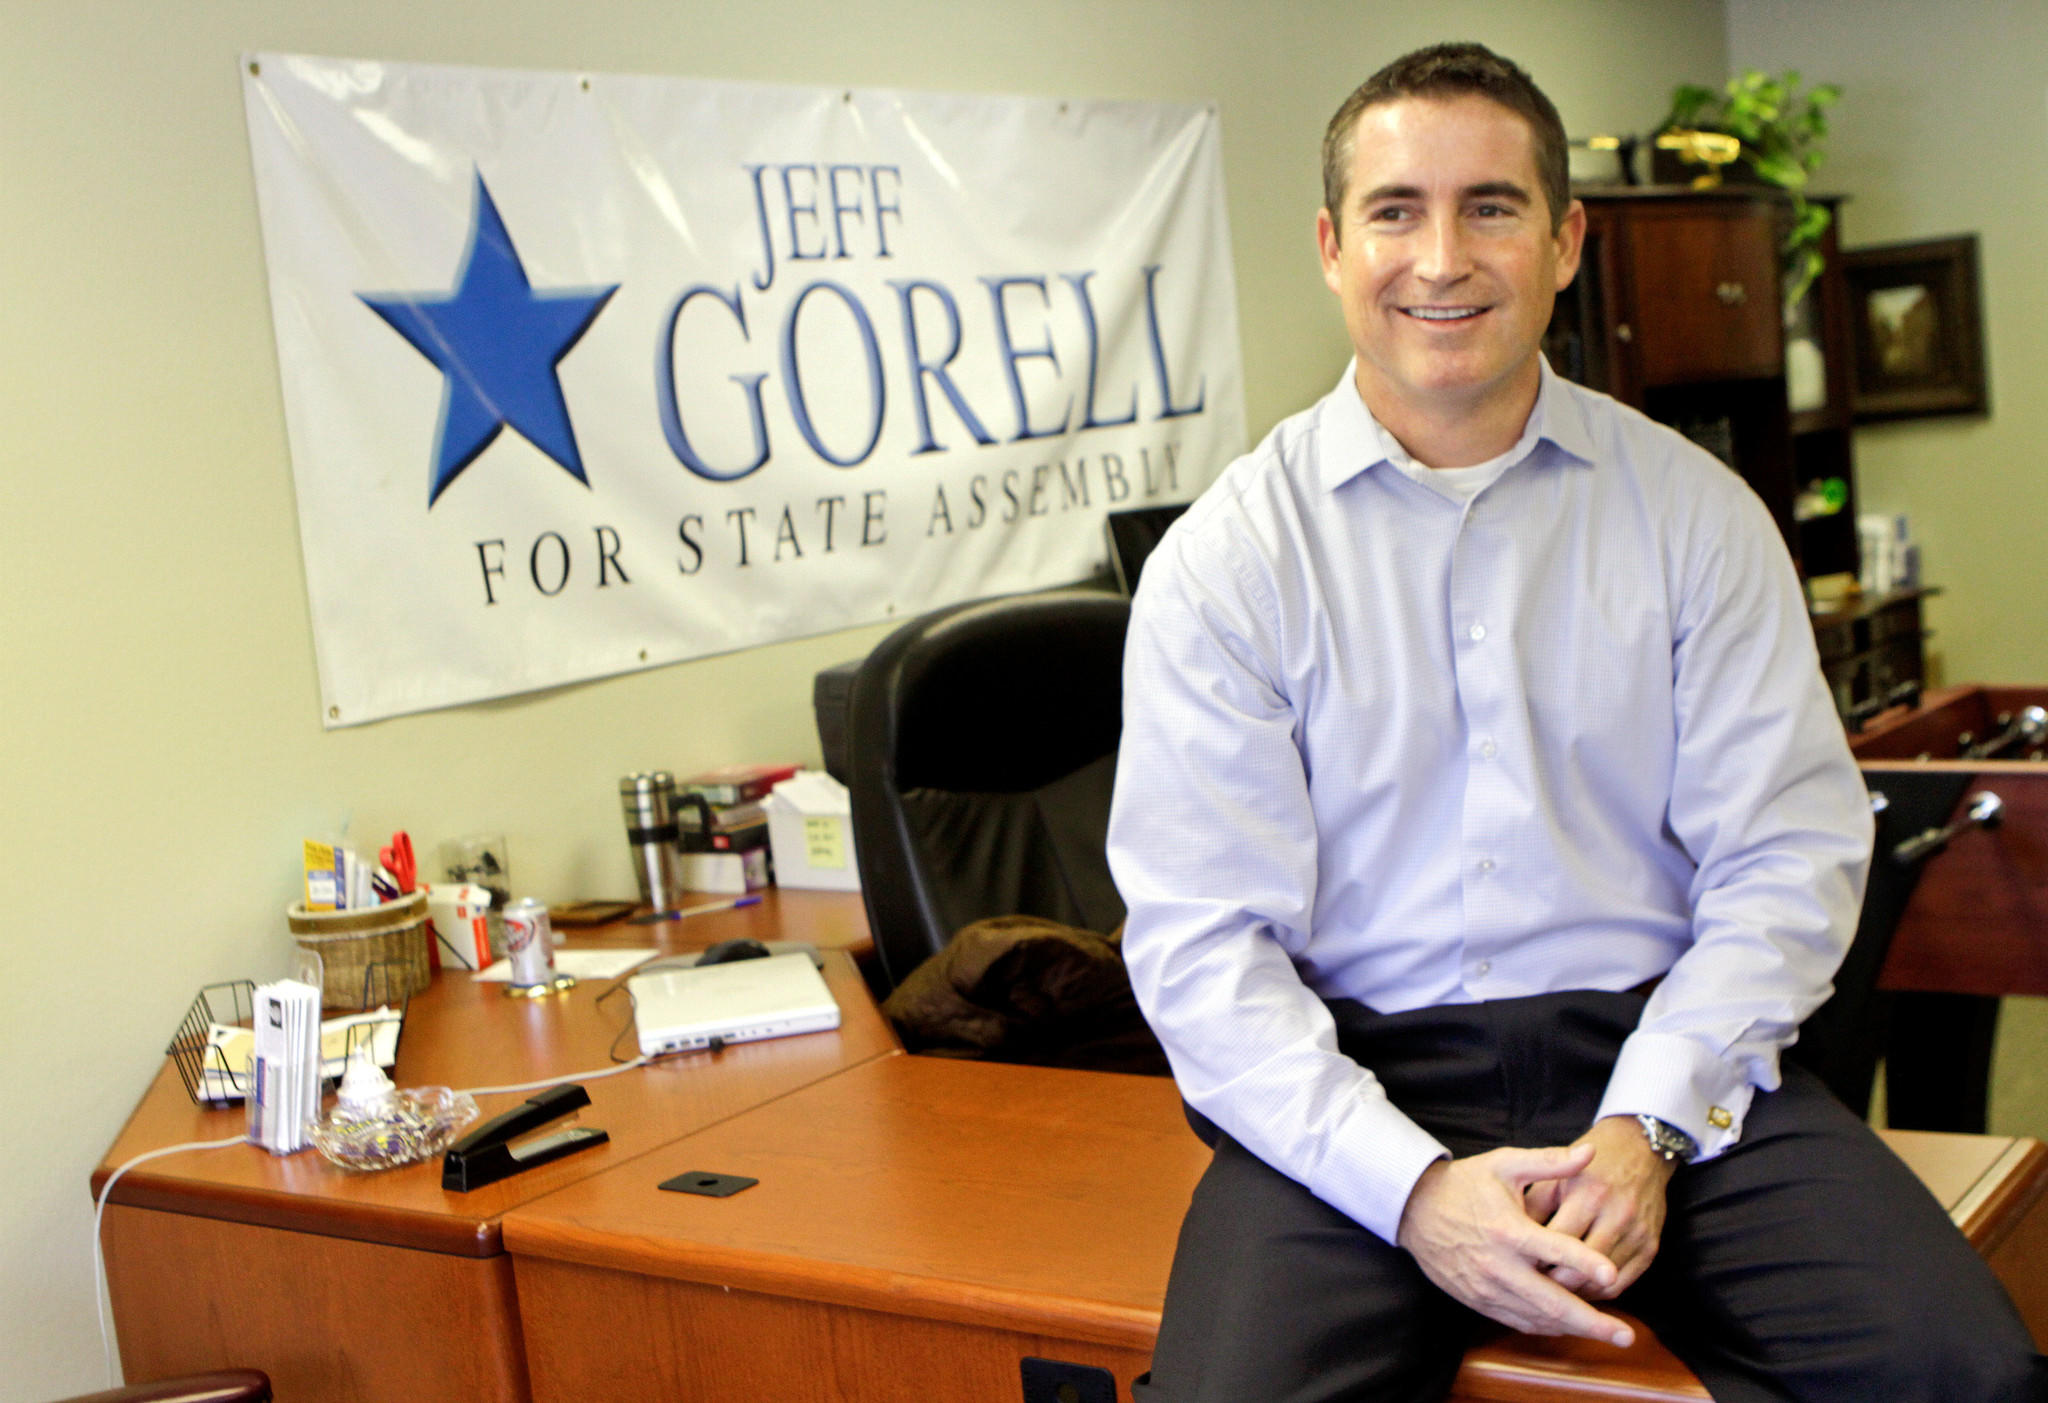 Democrats have launched an online ad slamming Assemblyman Jeff Gorell (R-Camarillo), who is now running for Congress.